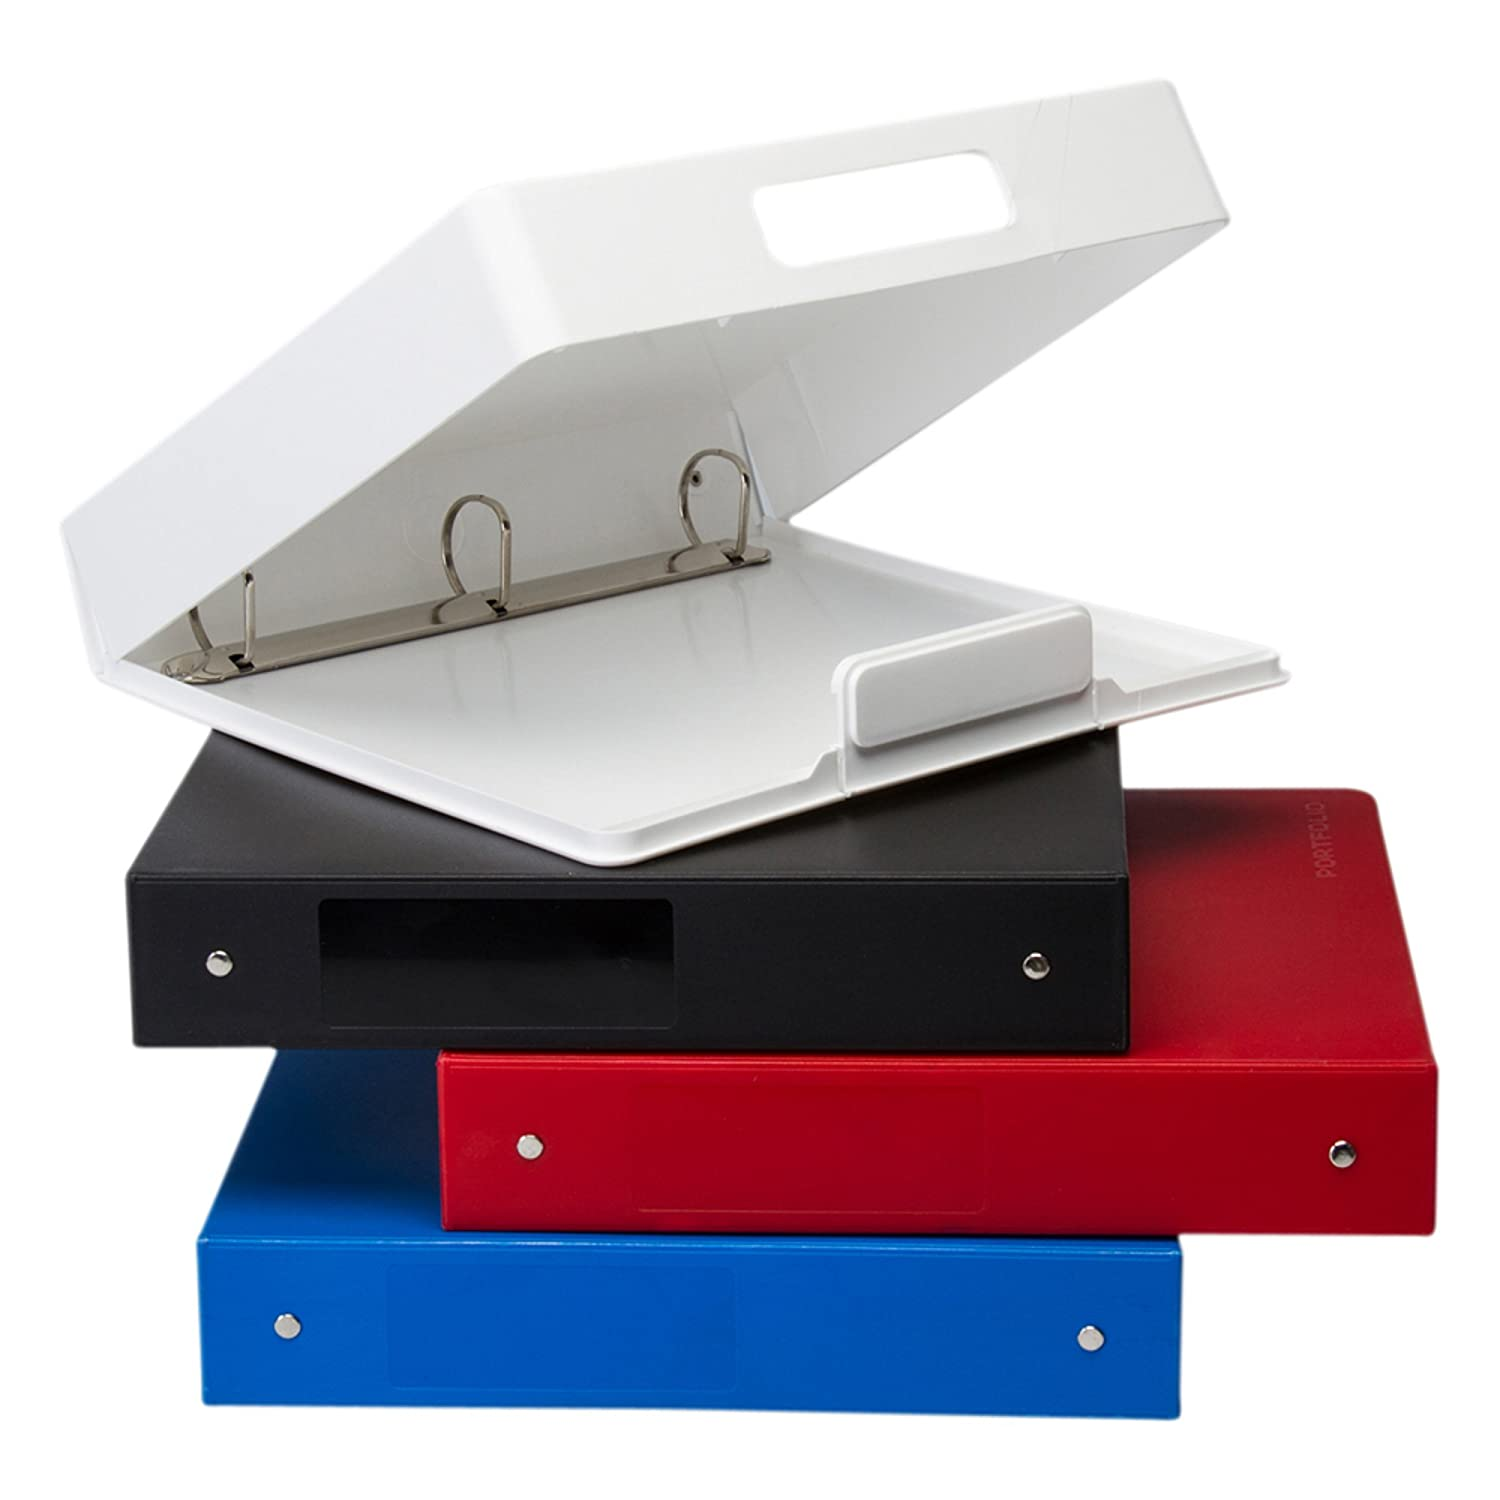 4 Binders, Portfolios heavy duty D-ring, made in Canada, Trimark Media Products